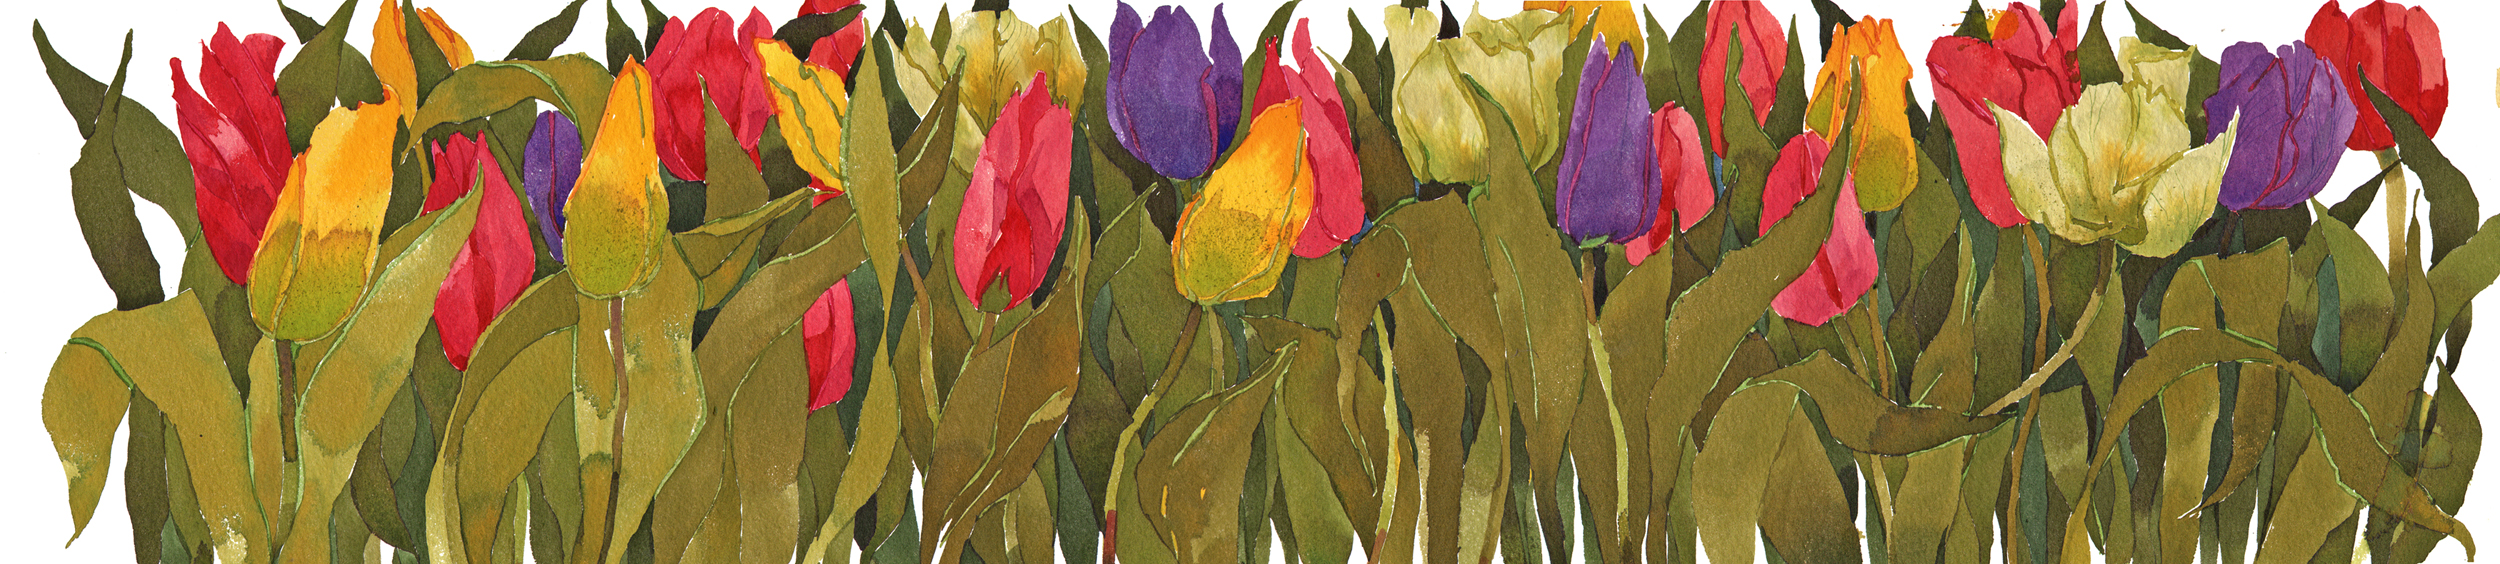 Long Tulips, New image